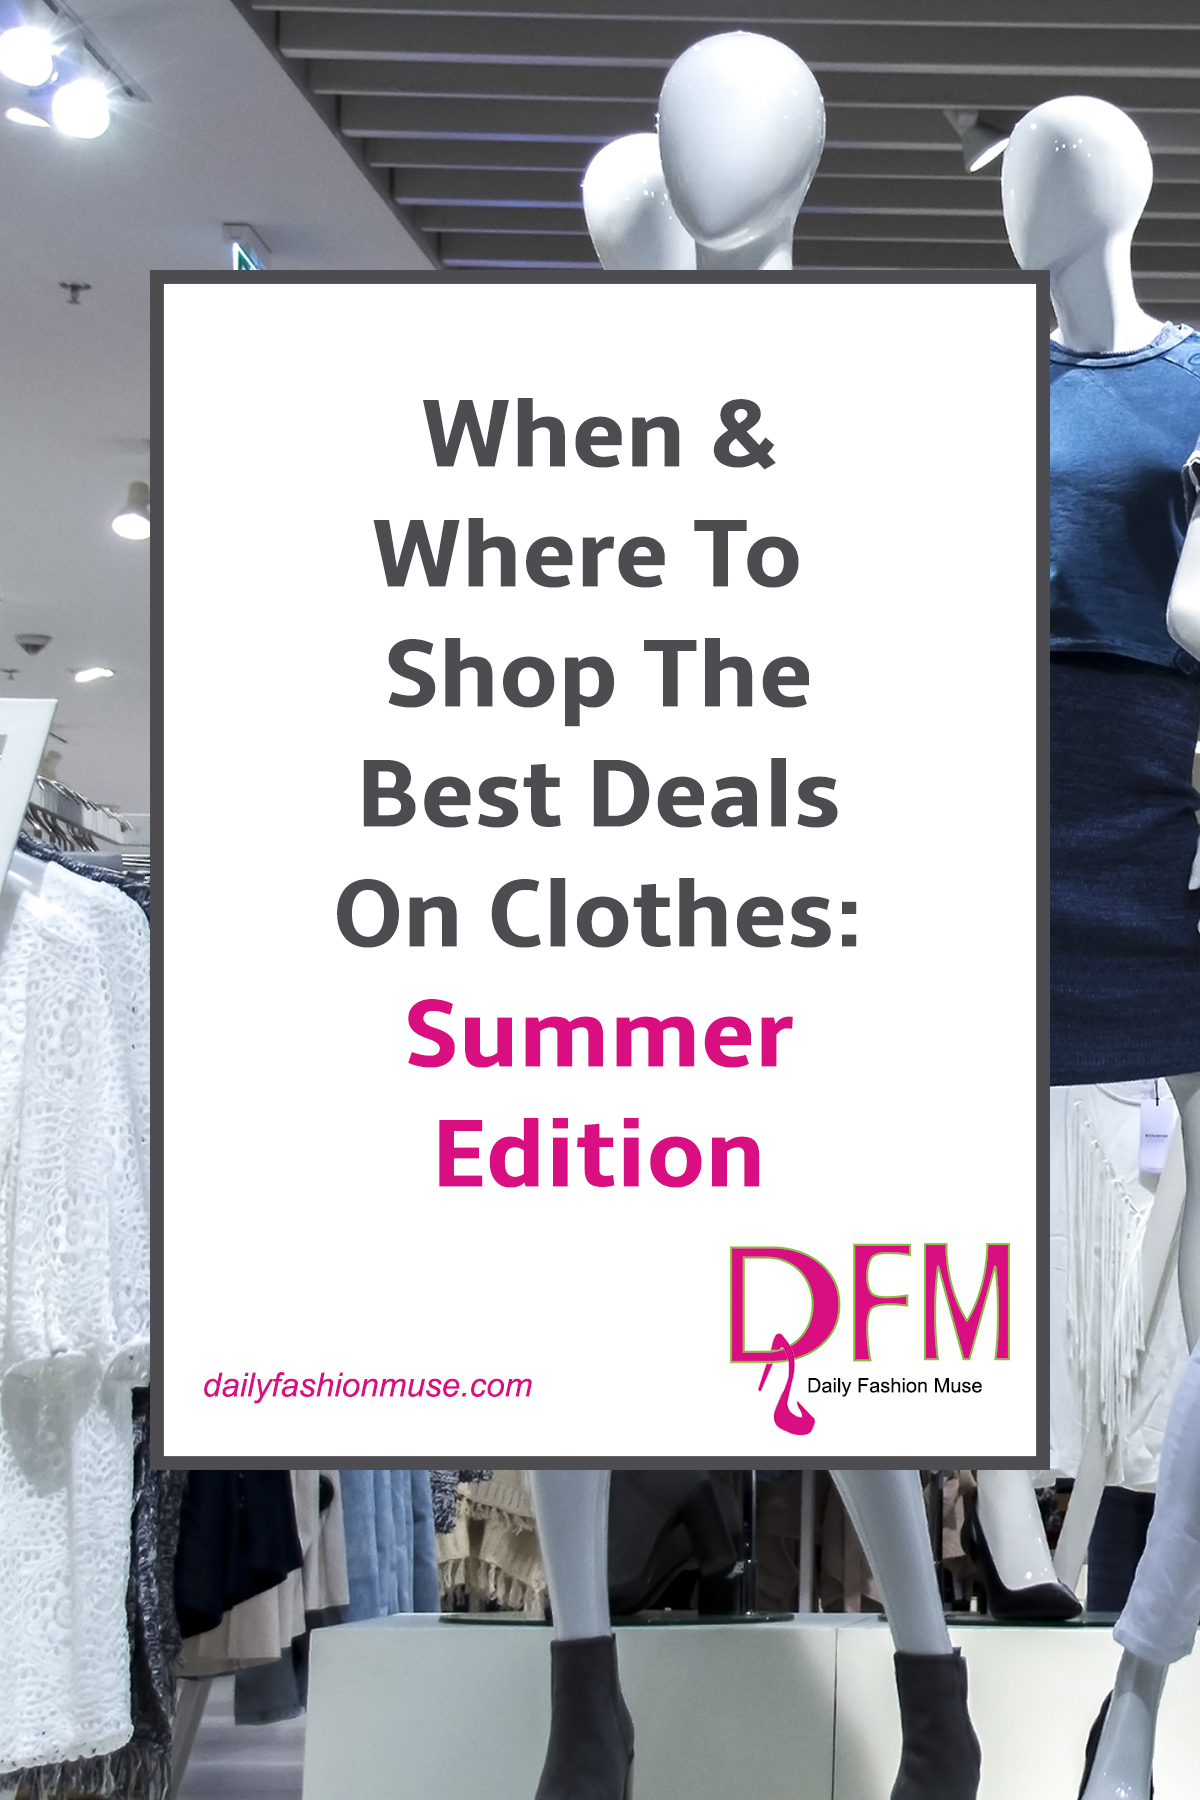 Want to be in the know when finding the best deals on clothes? Click through and read this post. I'm going to let you in on some retailing secrets about which months and what to buy during those months to score the best prices on clothing.